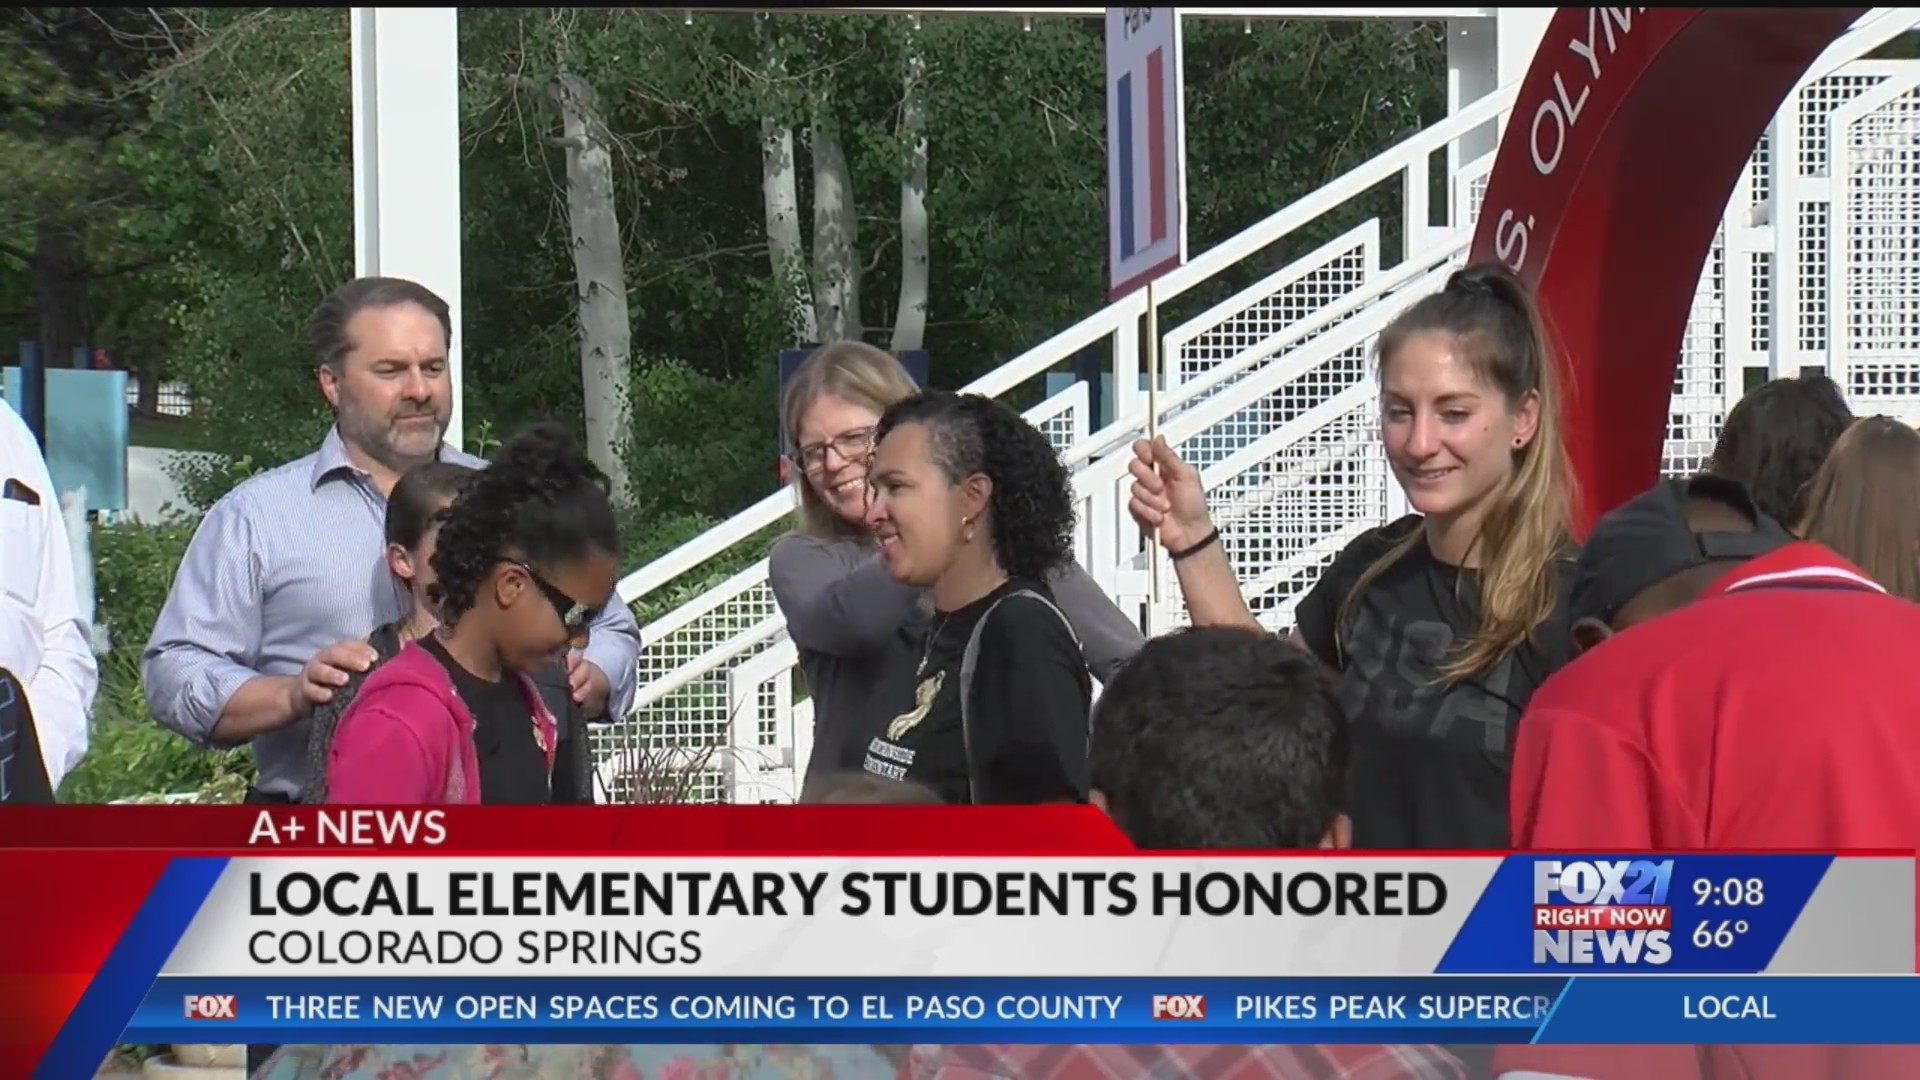 Colorado Springs elementary schoolers honored at Olympic Training Center